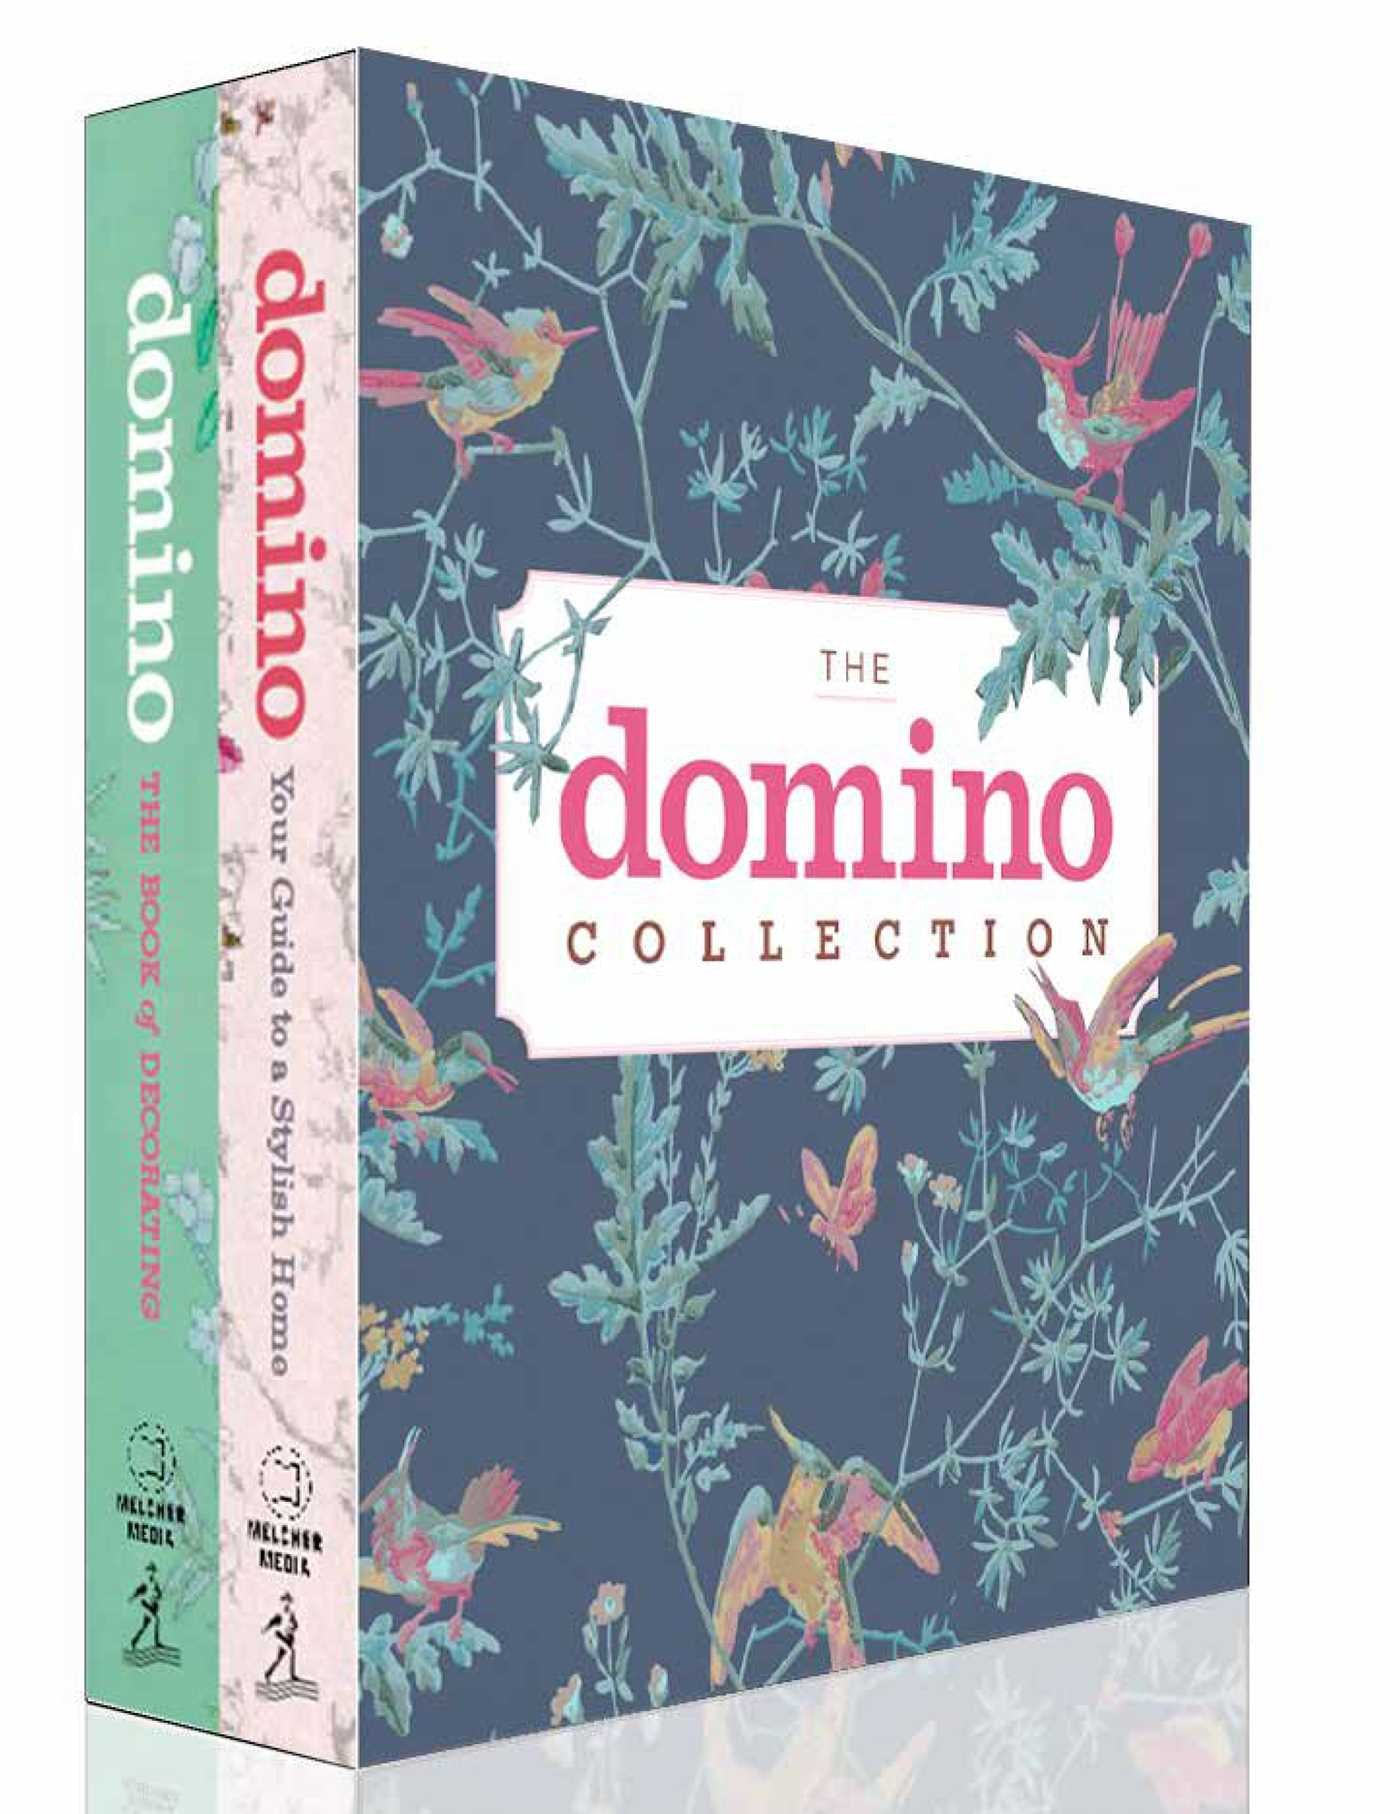 The Domino Decorating Books Box Set: The Book of Decorating and Your Guide to a Stylish Home (DOMINO Books)